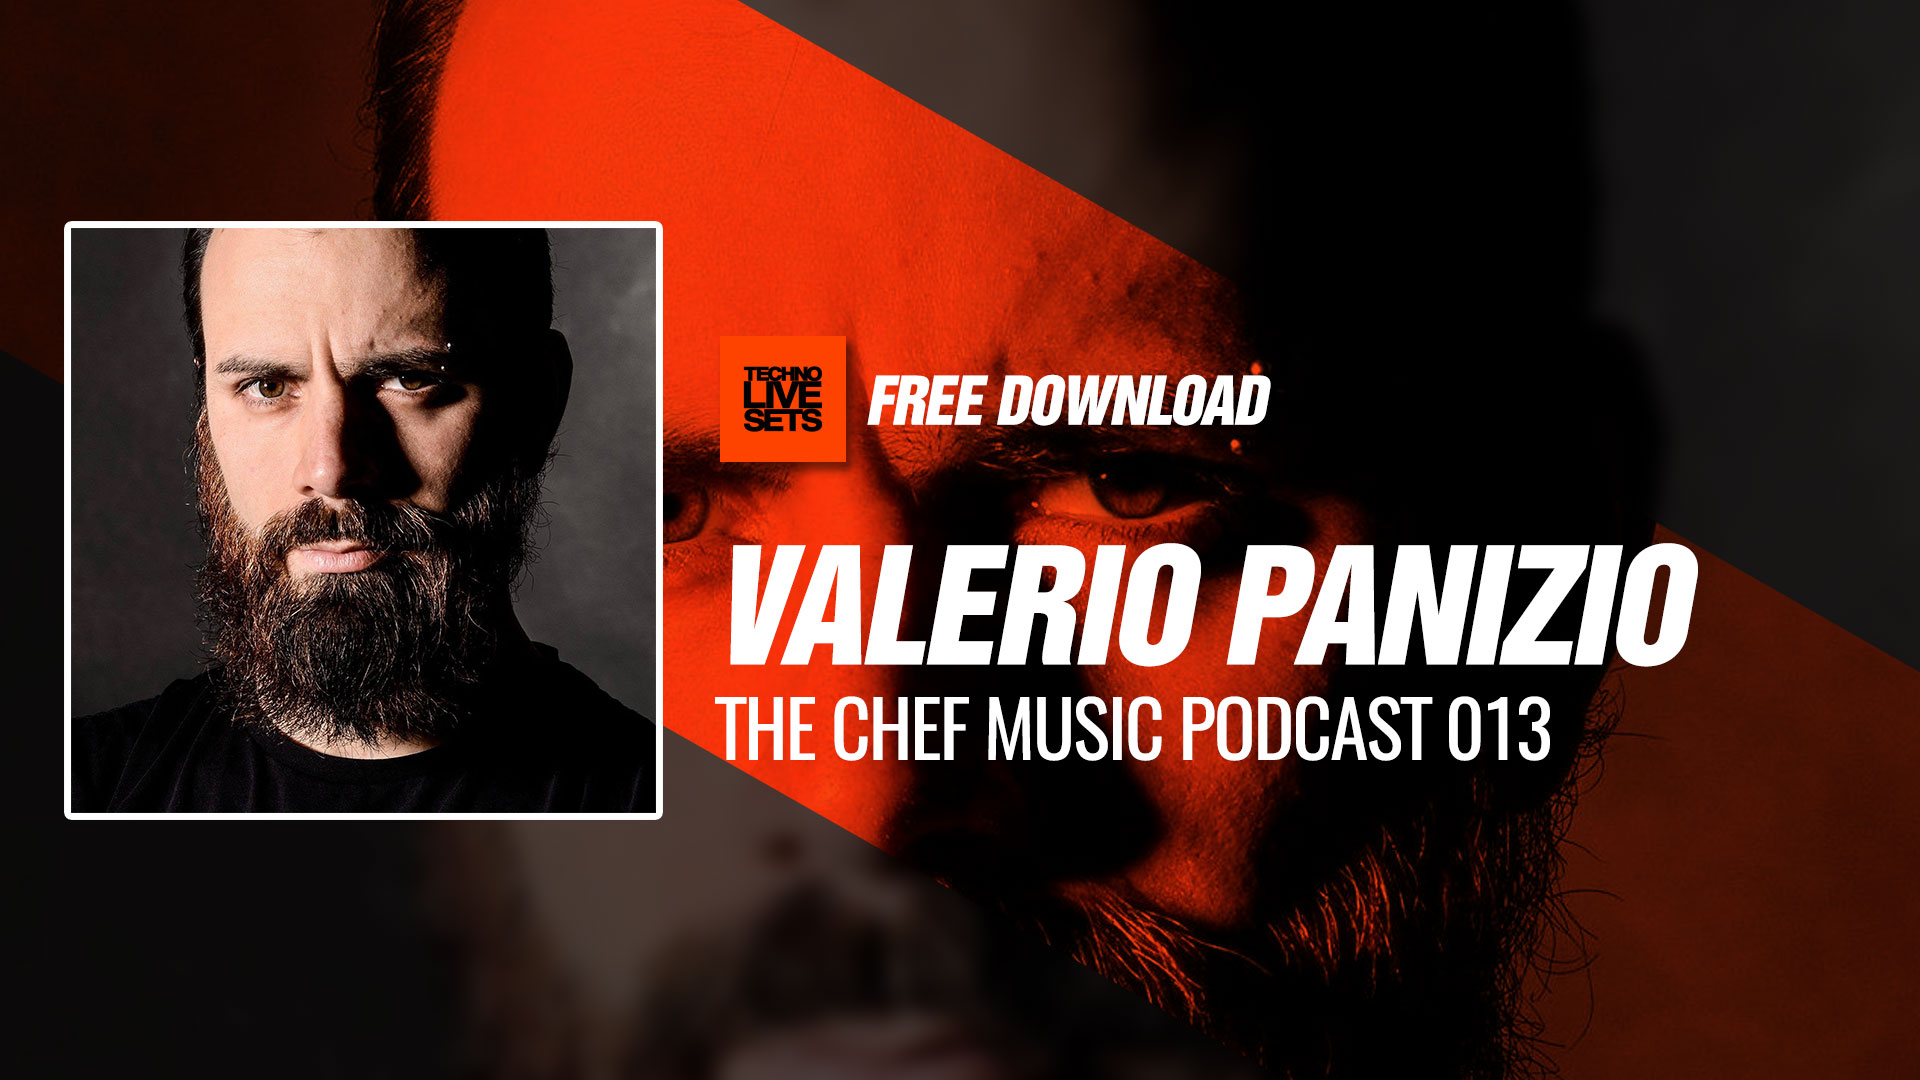 Valerio panizio 2017 the chef music podcast 013 30 08 2017 for House music podcast